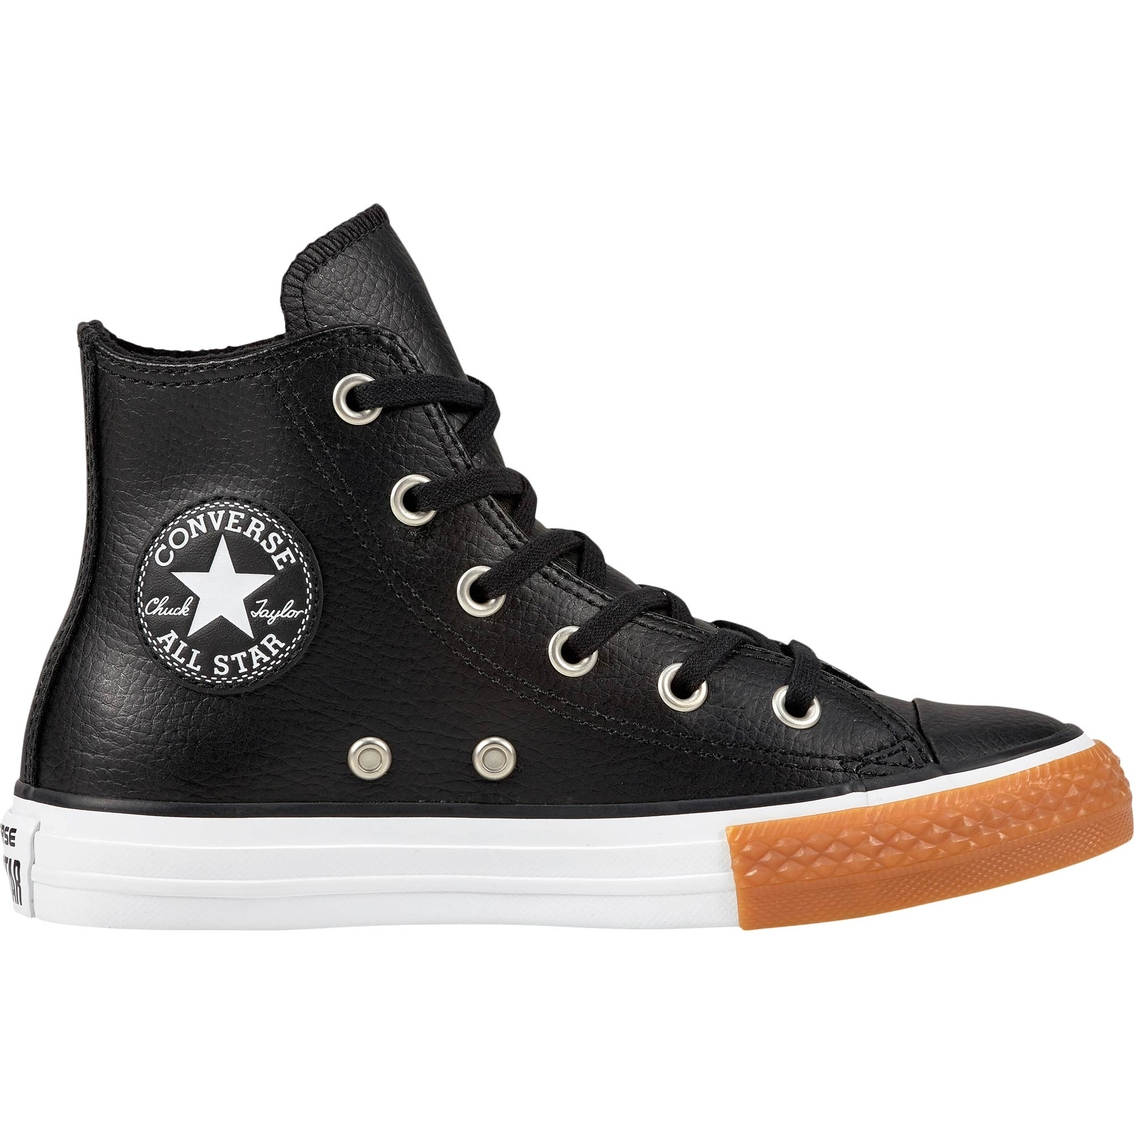 f81ab0ebe35f Converse Grade School Boys Chuck Taylor All Star High Top Sneakers ...